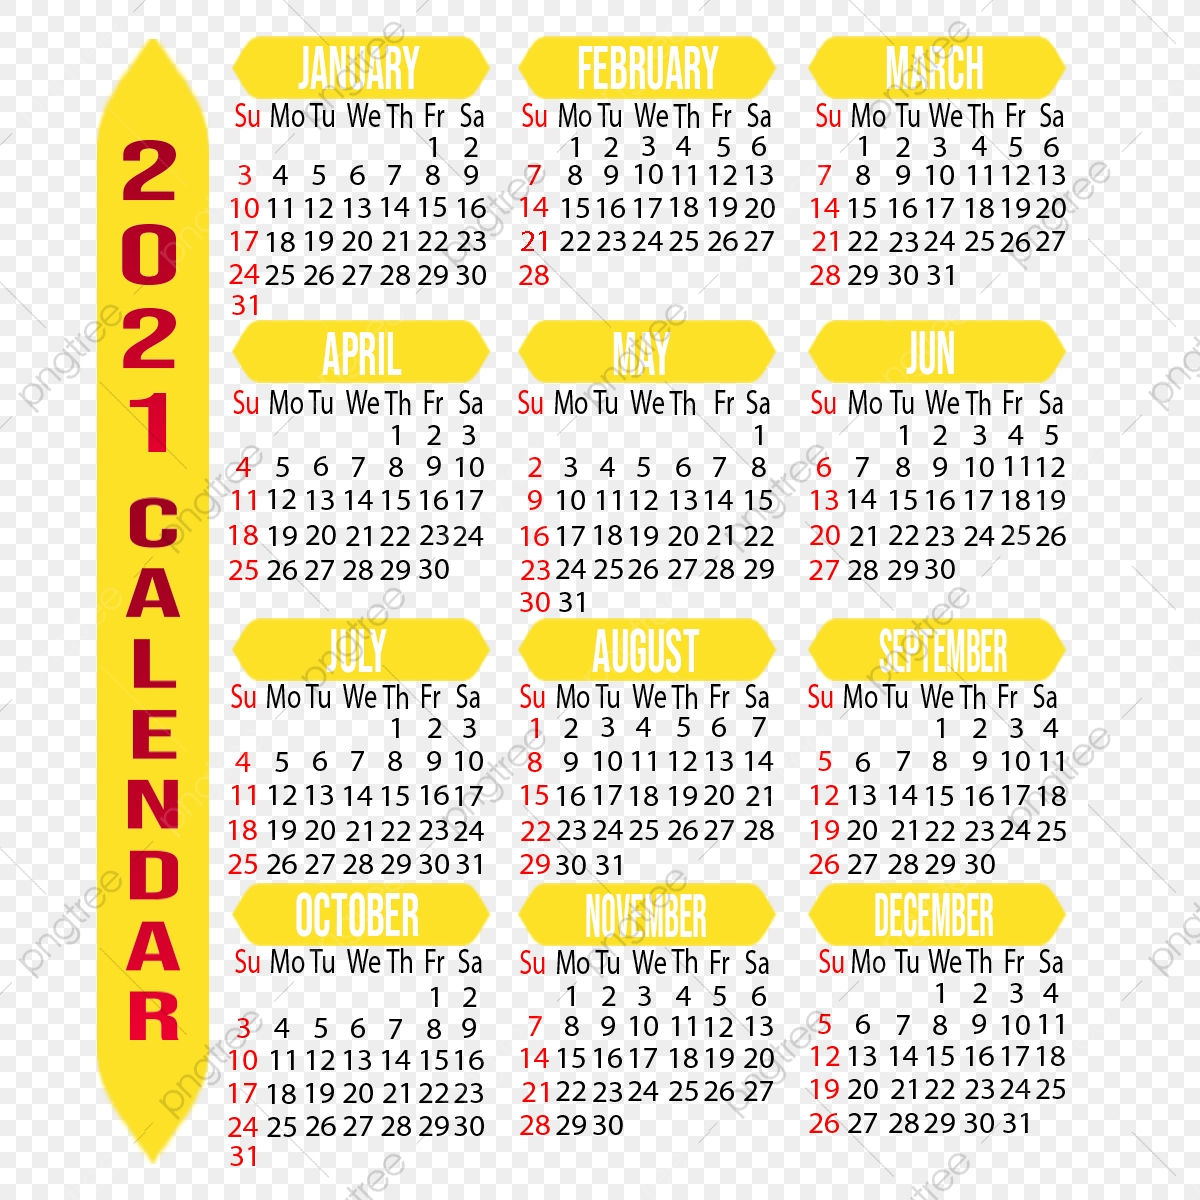 Customizable 2021 Calendar, Year, Month, Week Png regarding 2021 Fill-In Calendar